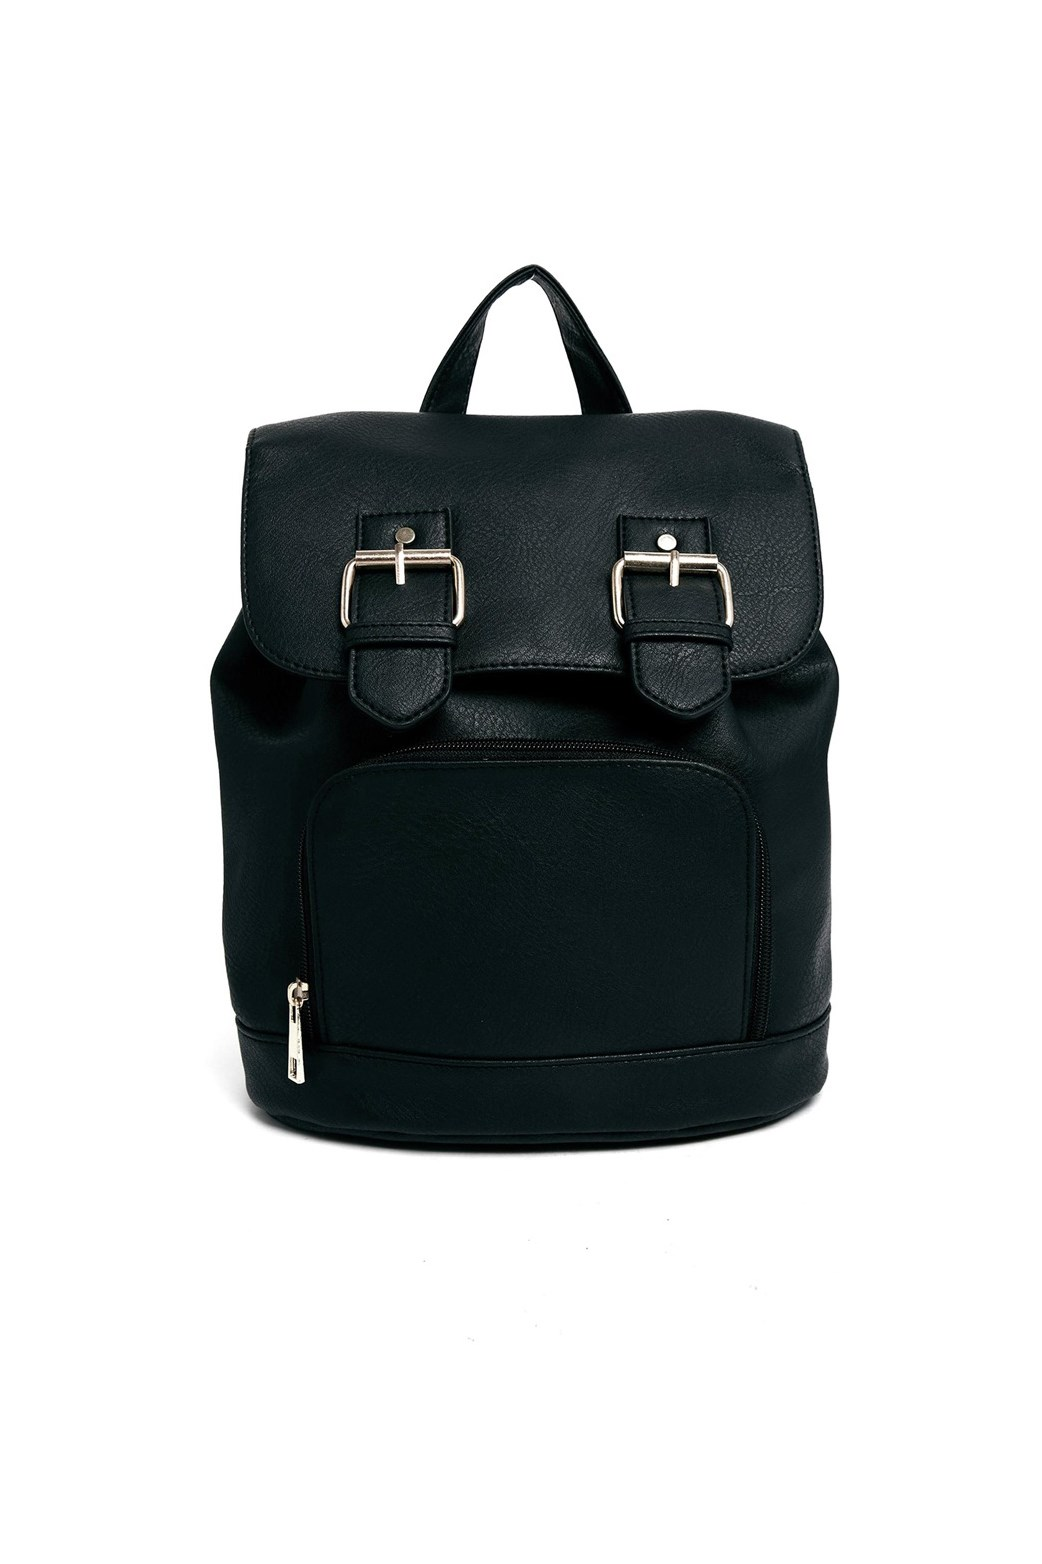 "Backpack, $54.90, Asos Collection, <a href=""http://www.asos.com"">asos.com </a>"